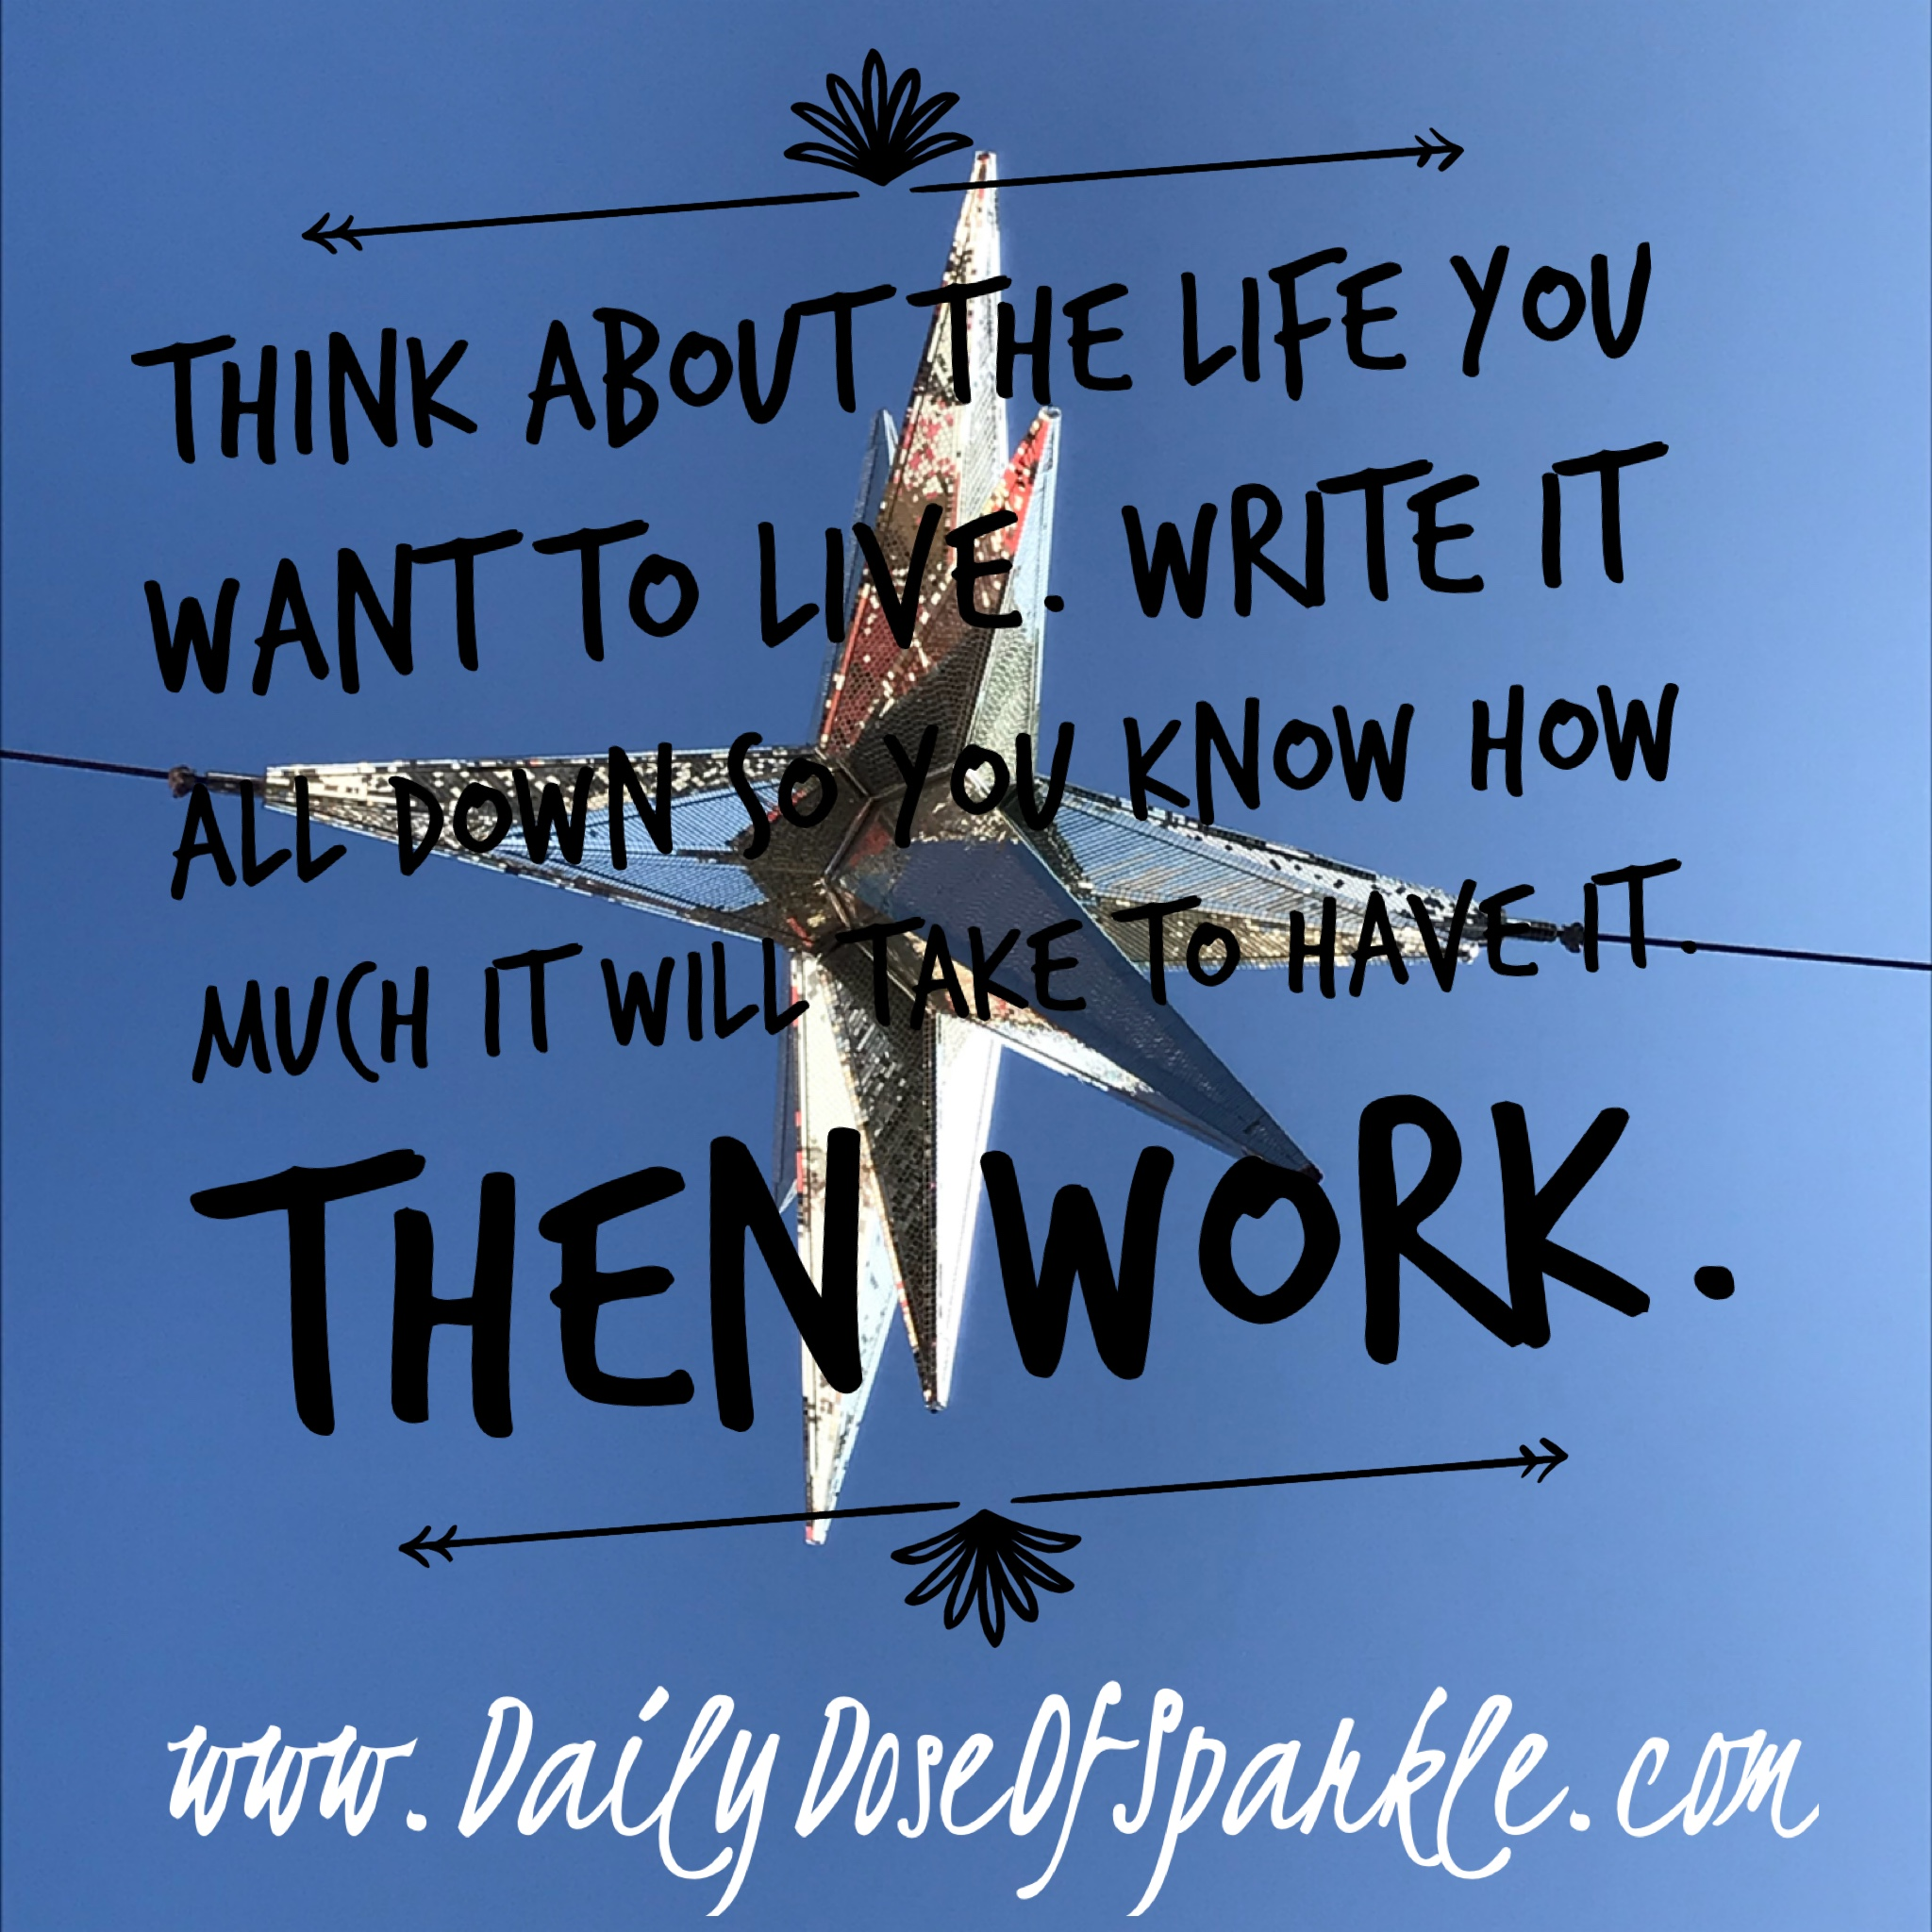 What do you Want? - Be clear on the life you want and how much it will cost to get it. Get specific.